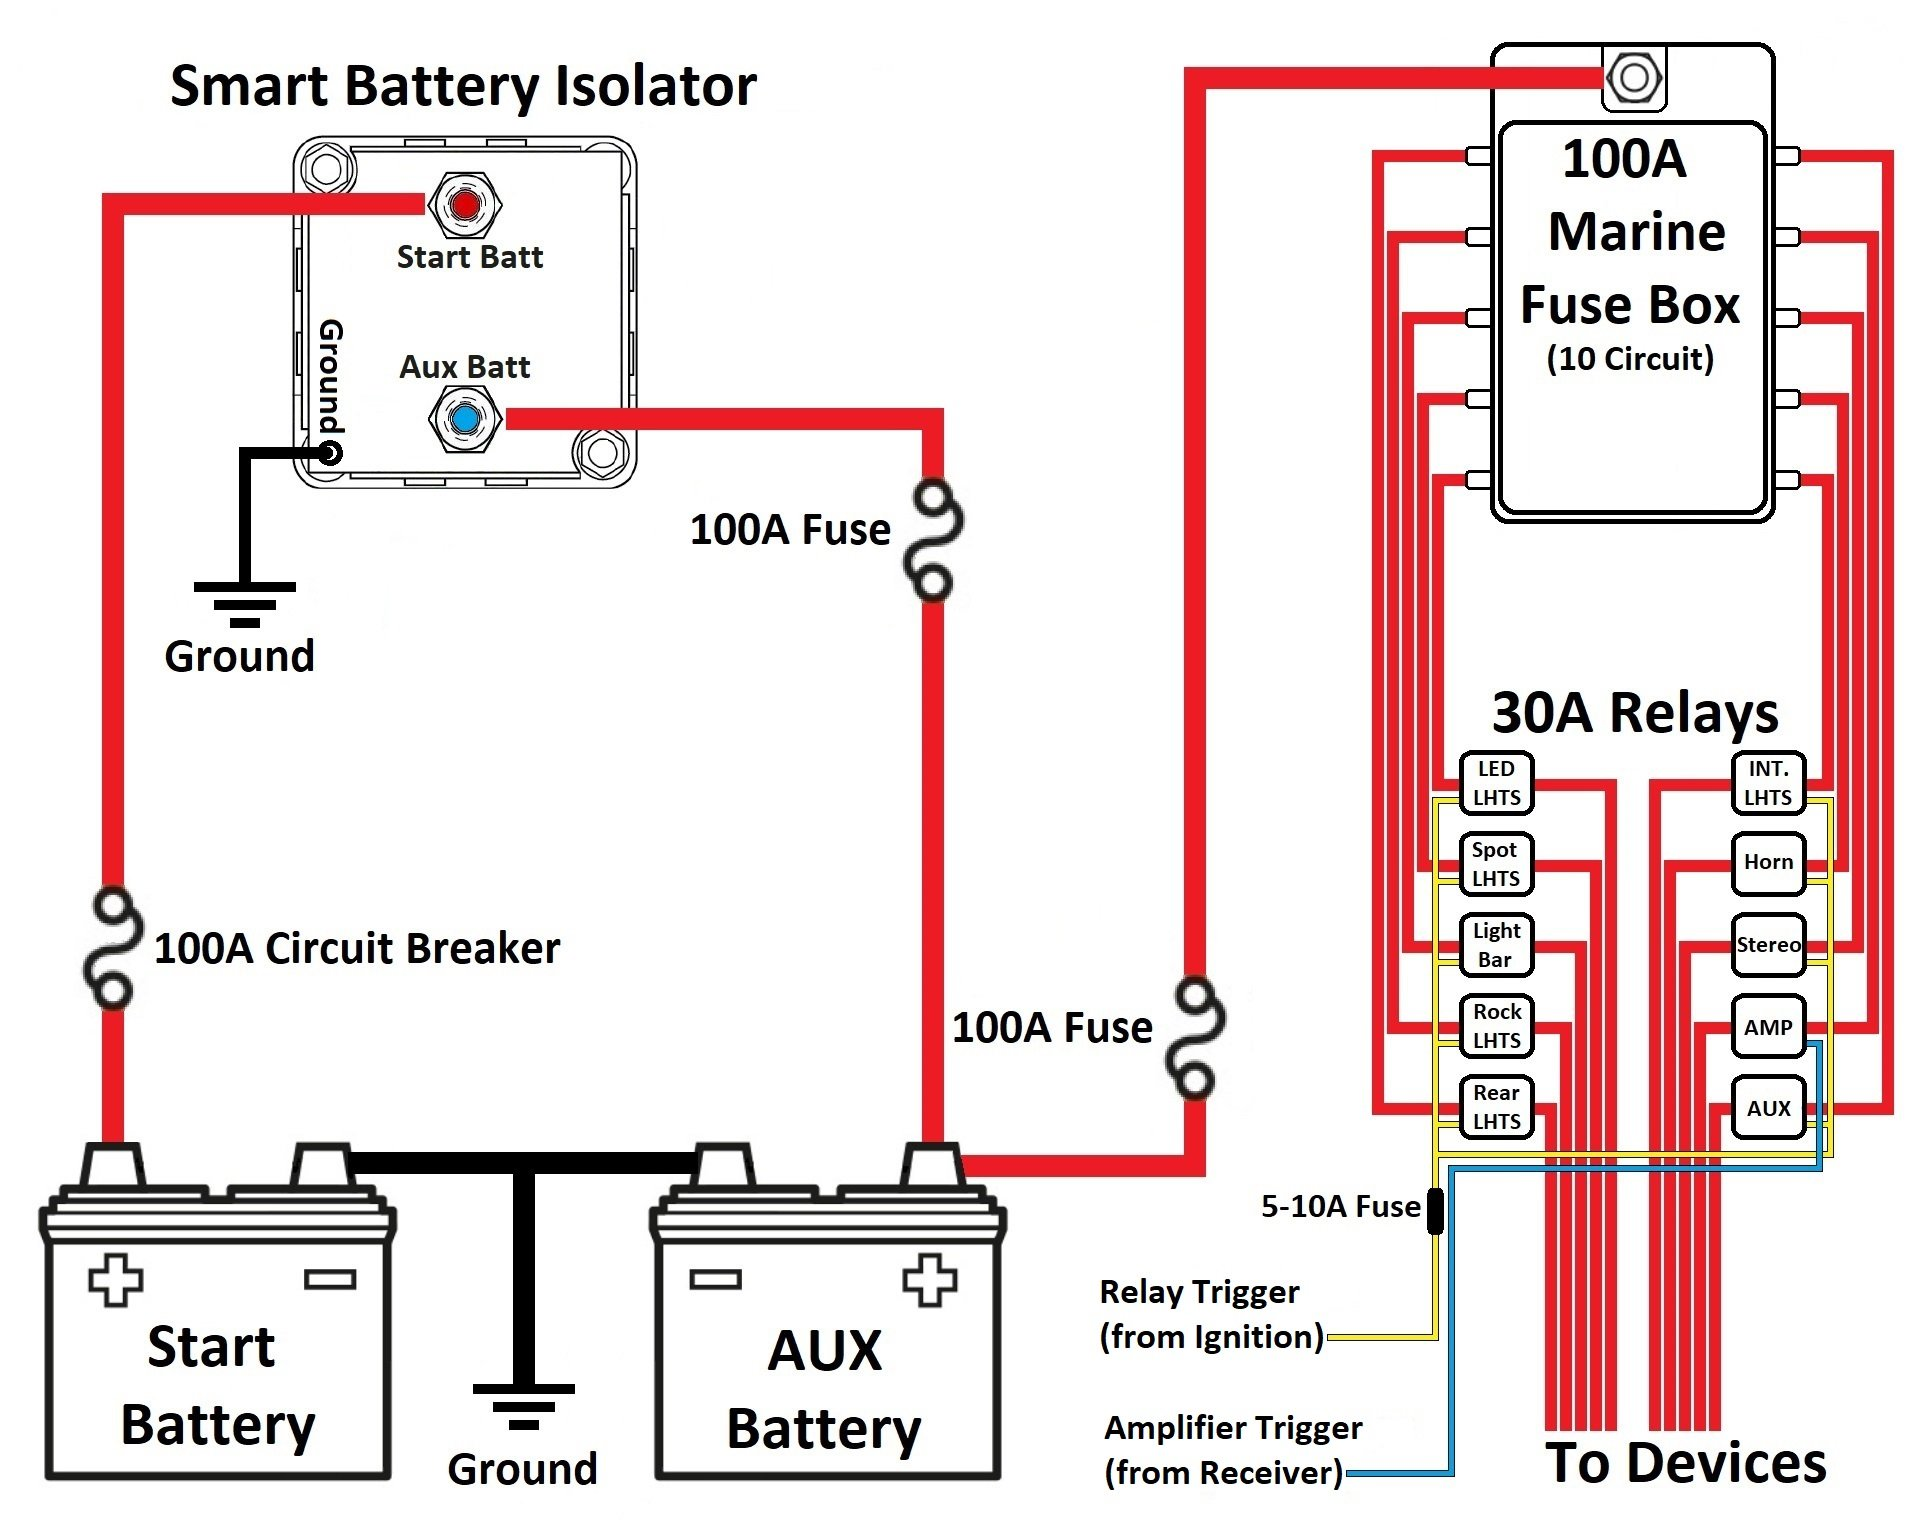 smart battery isolator dual battery wiring diagram 2002 GMC Safari Used  Values 2003 GMC Safari